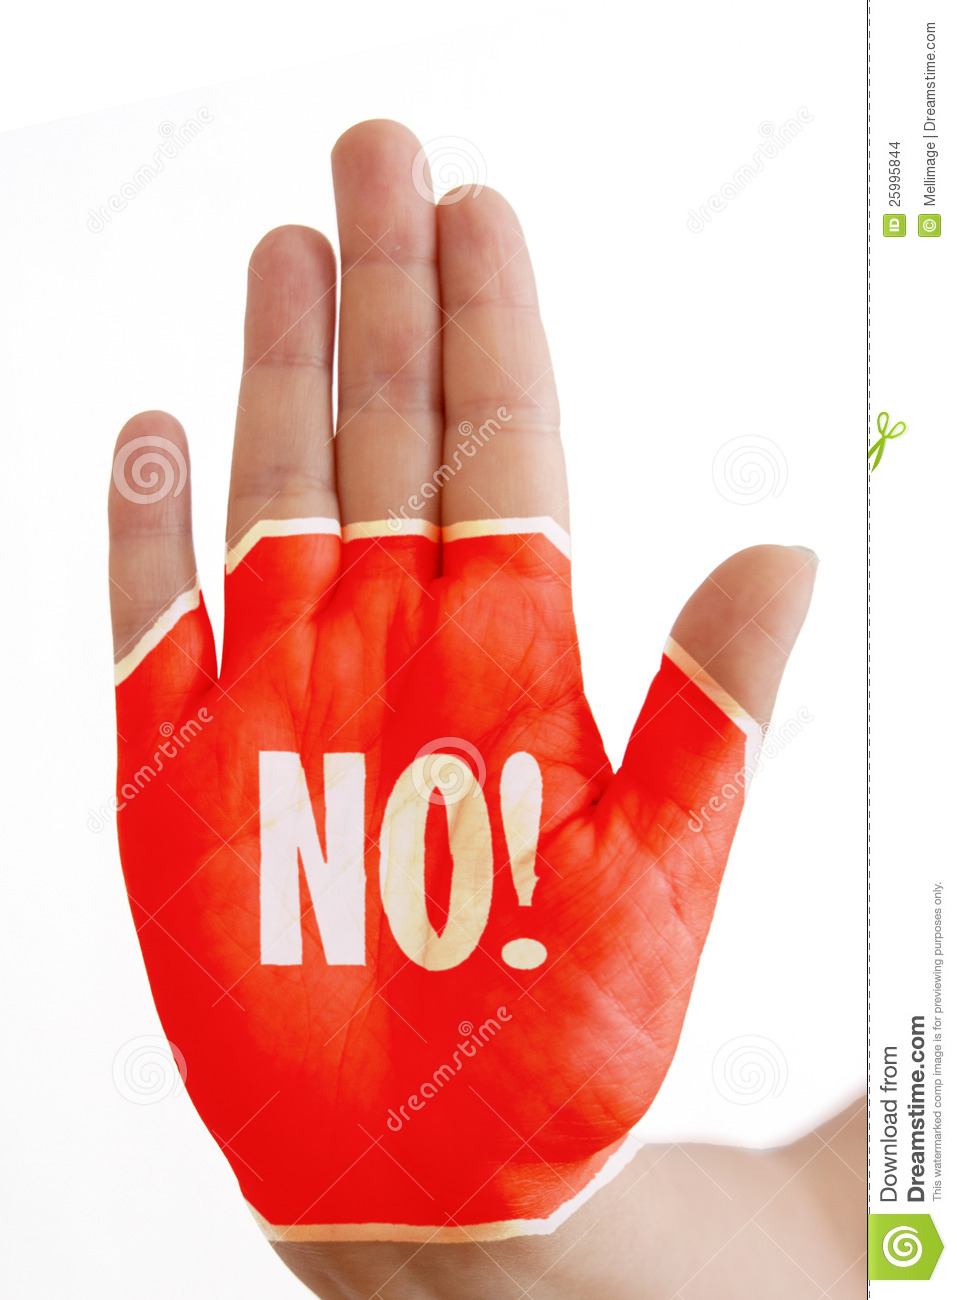 More similar stock images of ` Hand with No sign! `